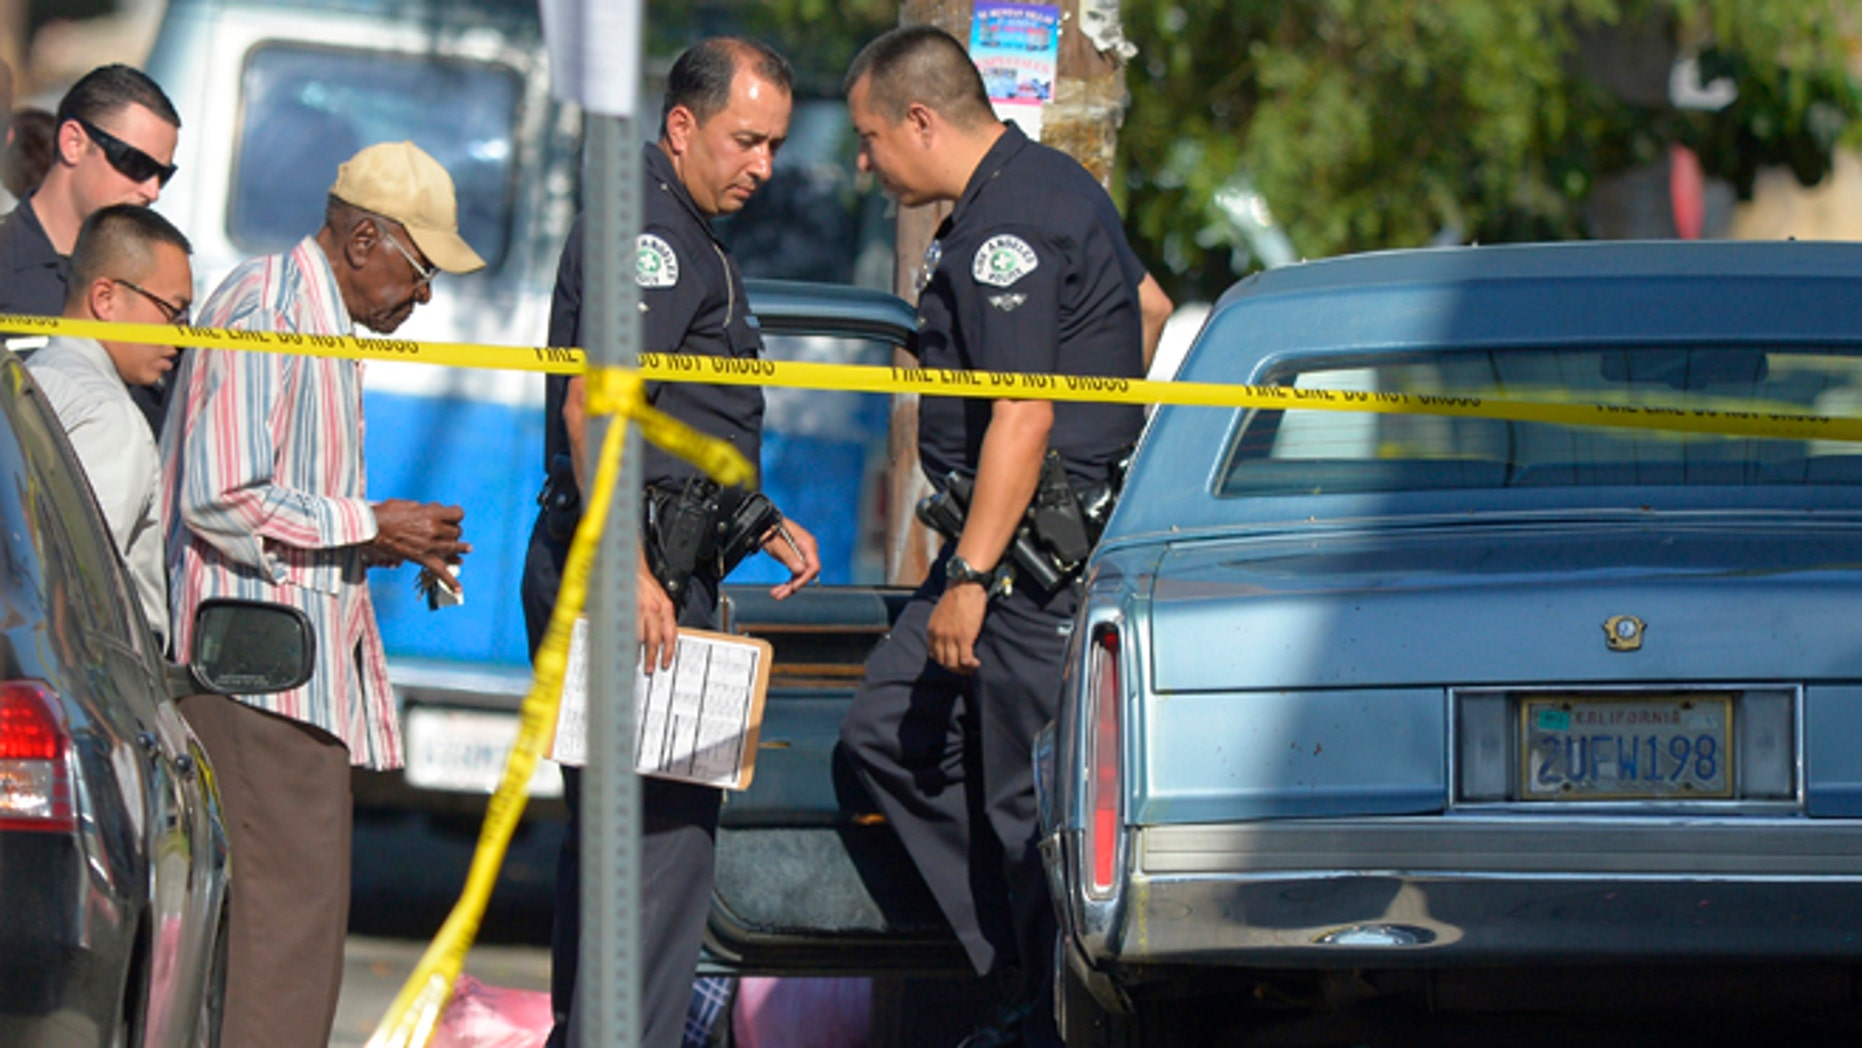 August 29, 2012: Preston Carter, left, 100, talks with police officers after police say his car went onto a sidewalk and plowed into a group of parents and children outside a South Los Angeles elementary school in Los Angeles. Nine children and two adults were injured in the wreck.